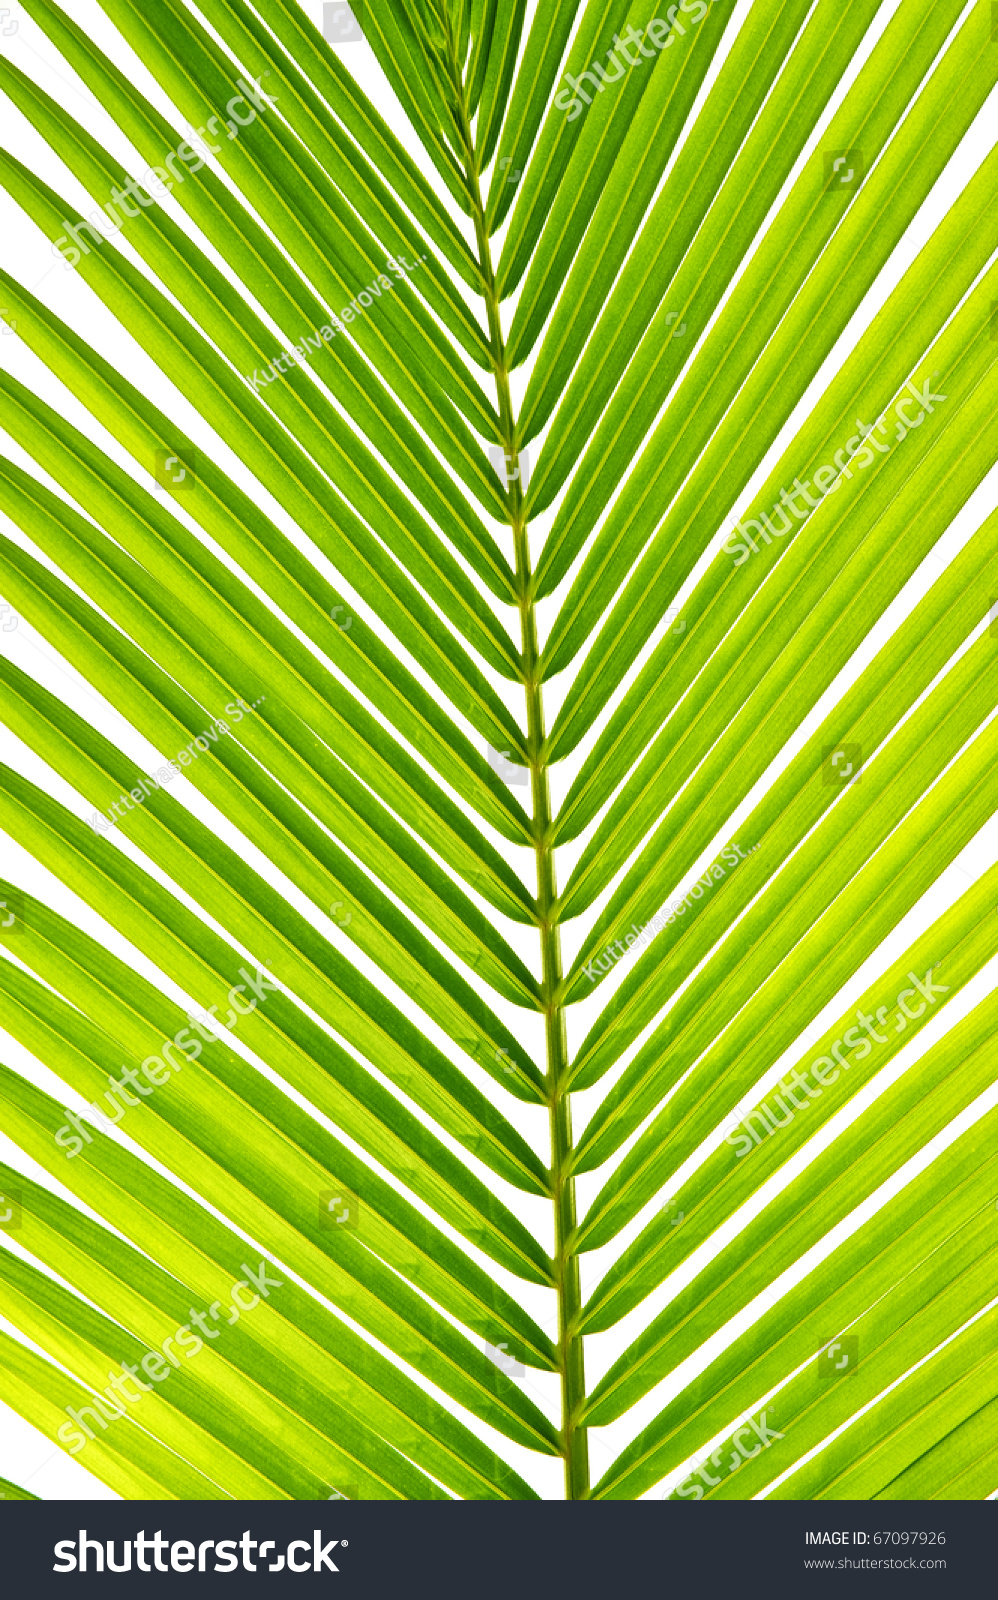 Palm Leaf Coconut Tree Stock Photo 67097926 : Shutterstock